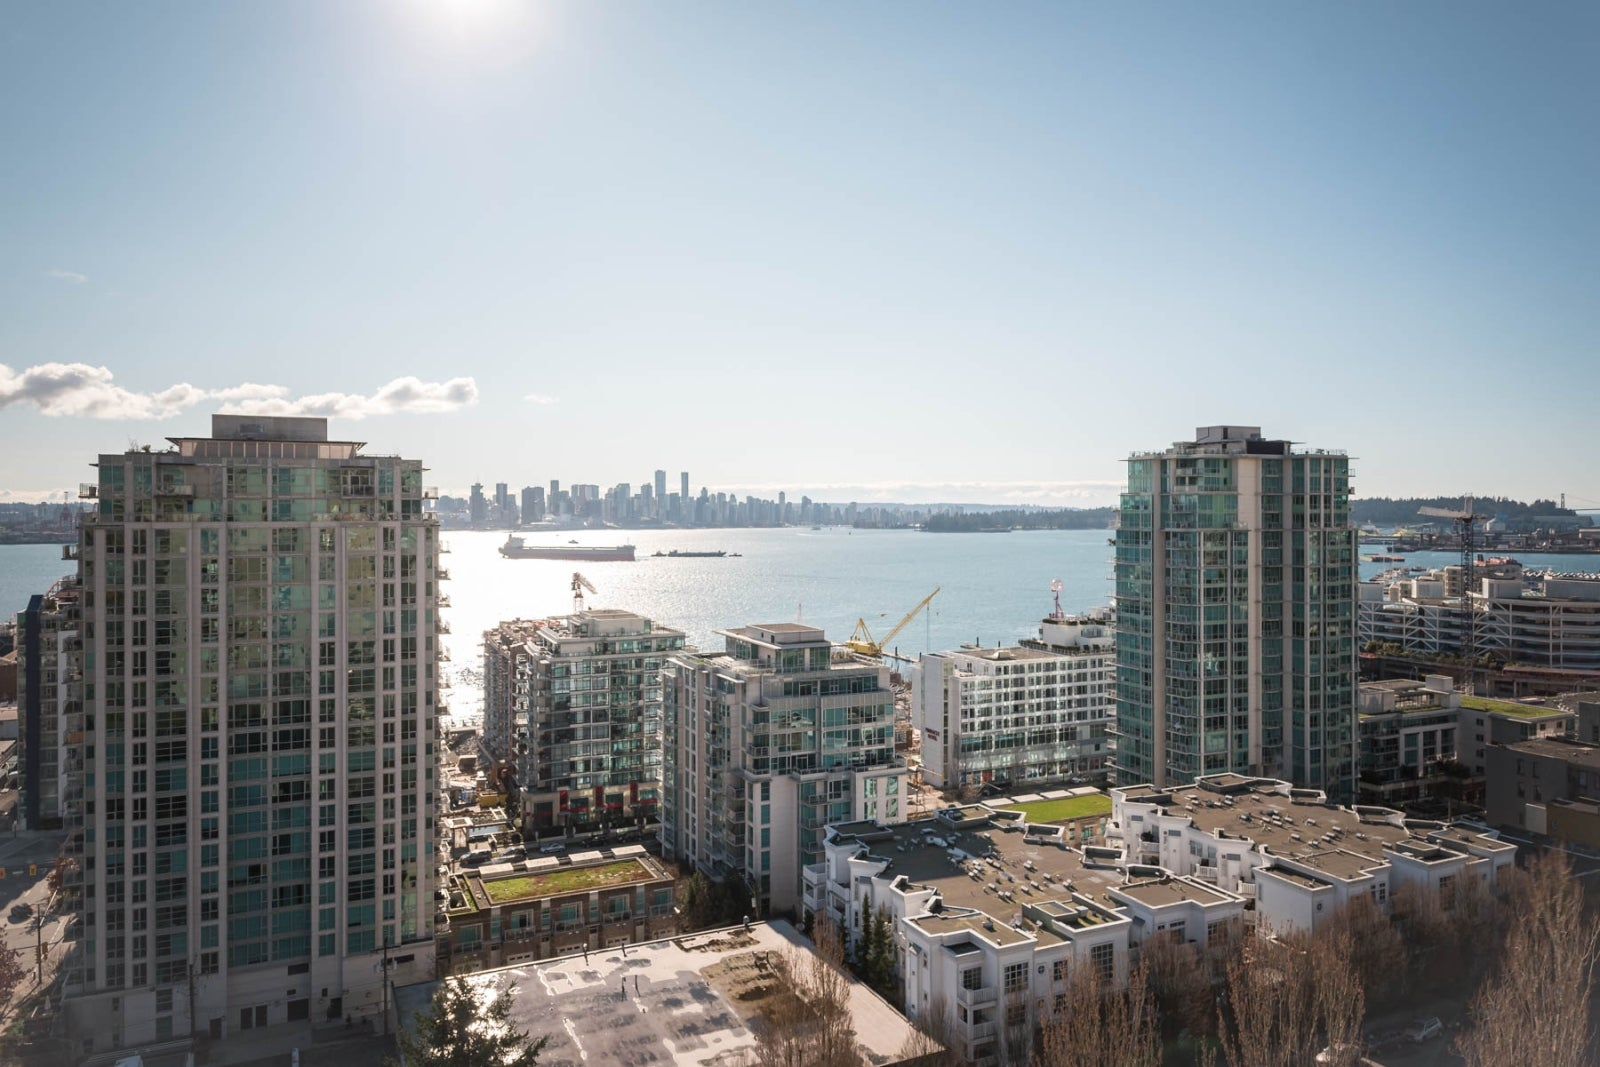 1601 145 ST GEORGES AVENUE - Lower Lonsdale Apartment/Condo for sale, 1 Bedroom (R2244405) #16